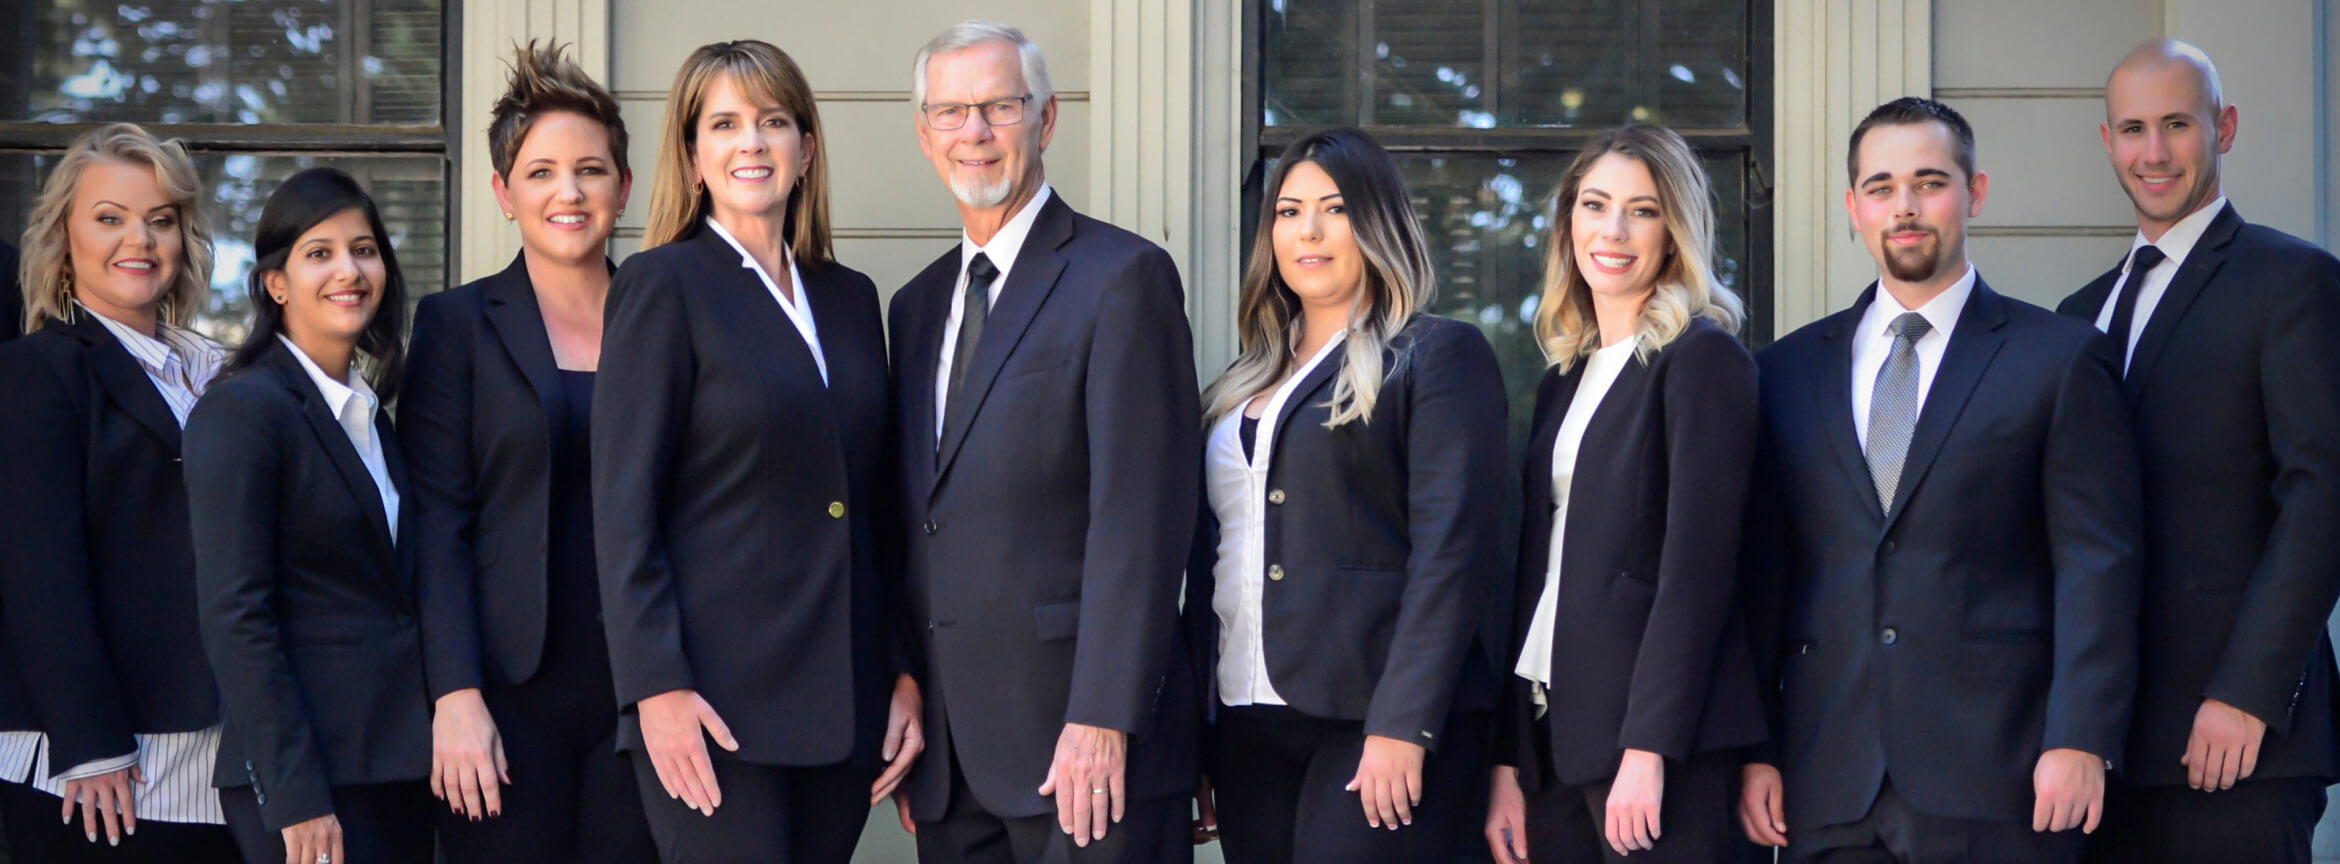 franklin and downs funeral homes and cremations in modesto and ceres, ca